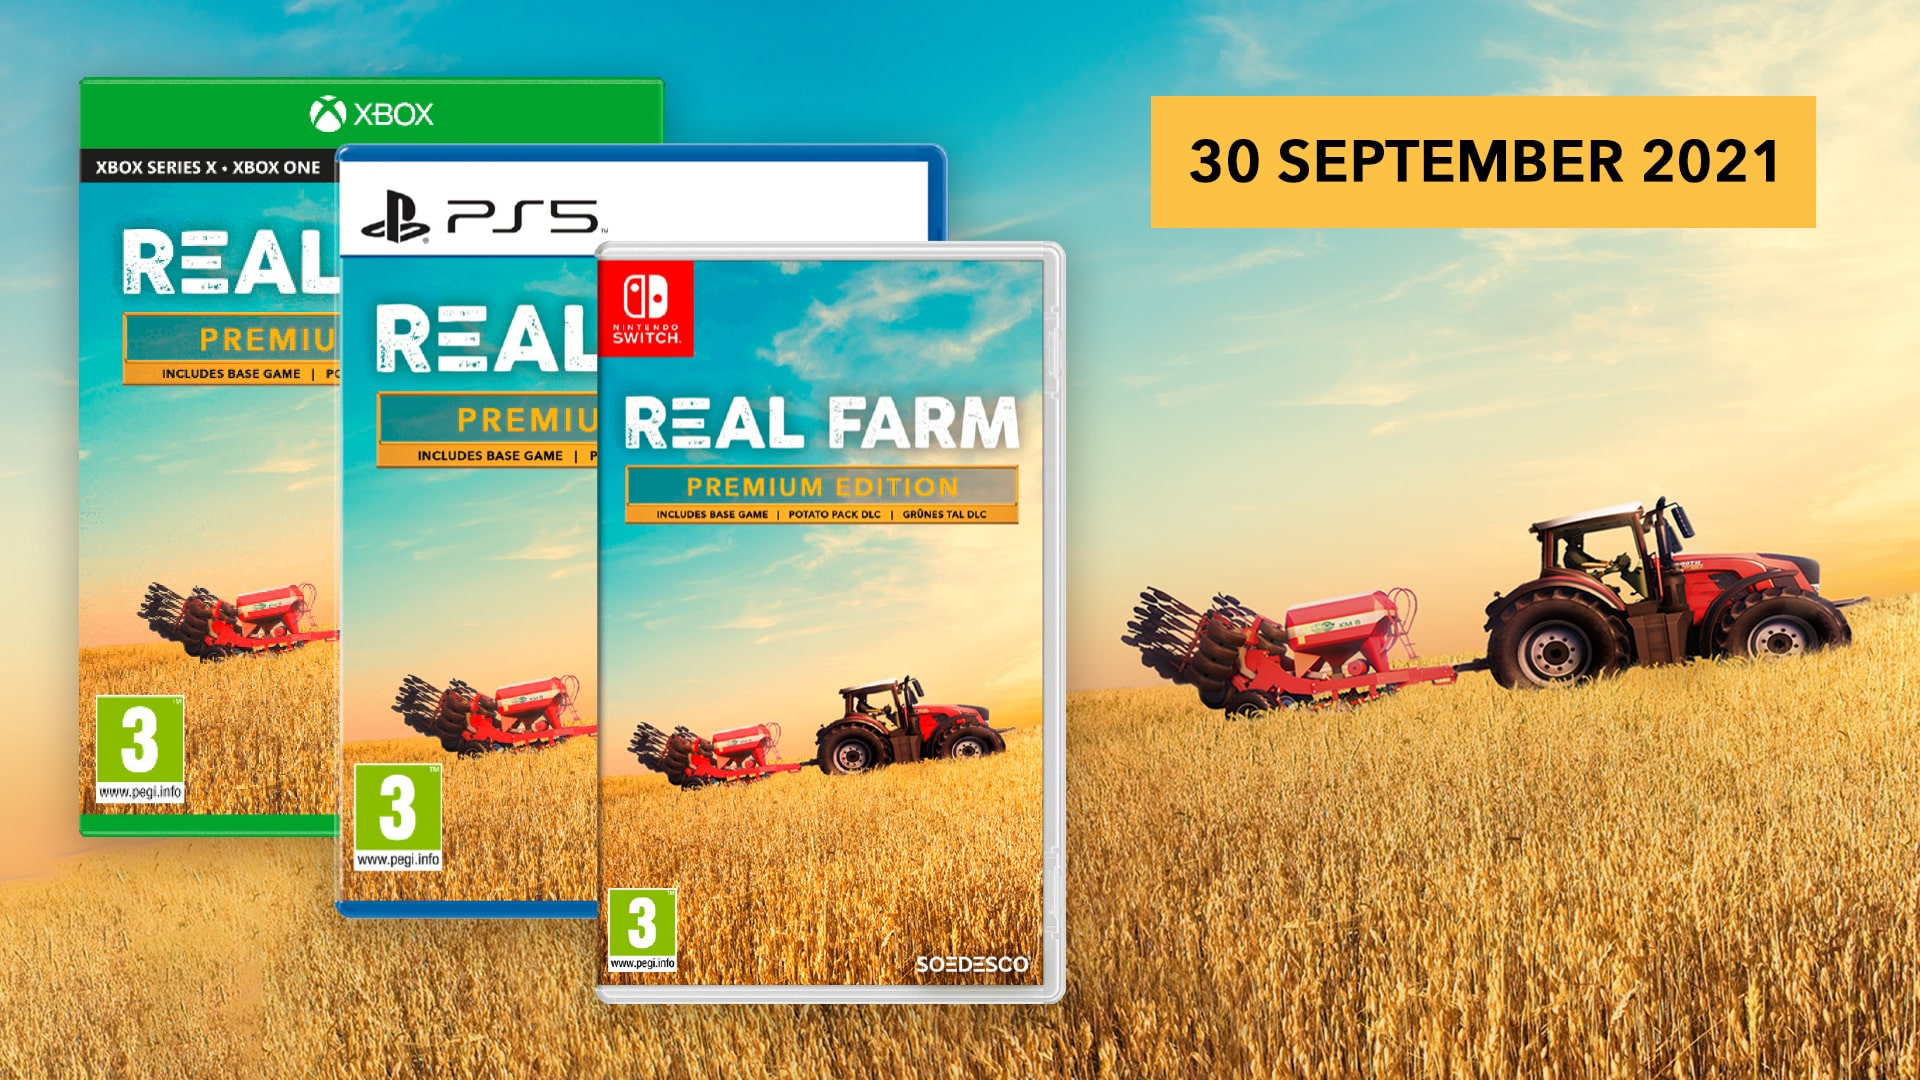 Real Farm - Premium Edition Coming to PS5™, Xbox Series X|S & Nintendo Switch on September 30